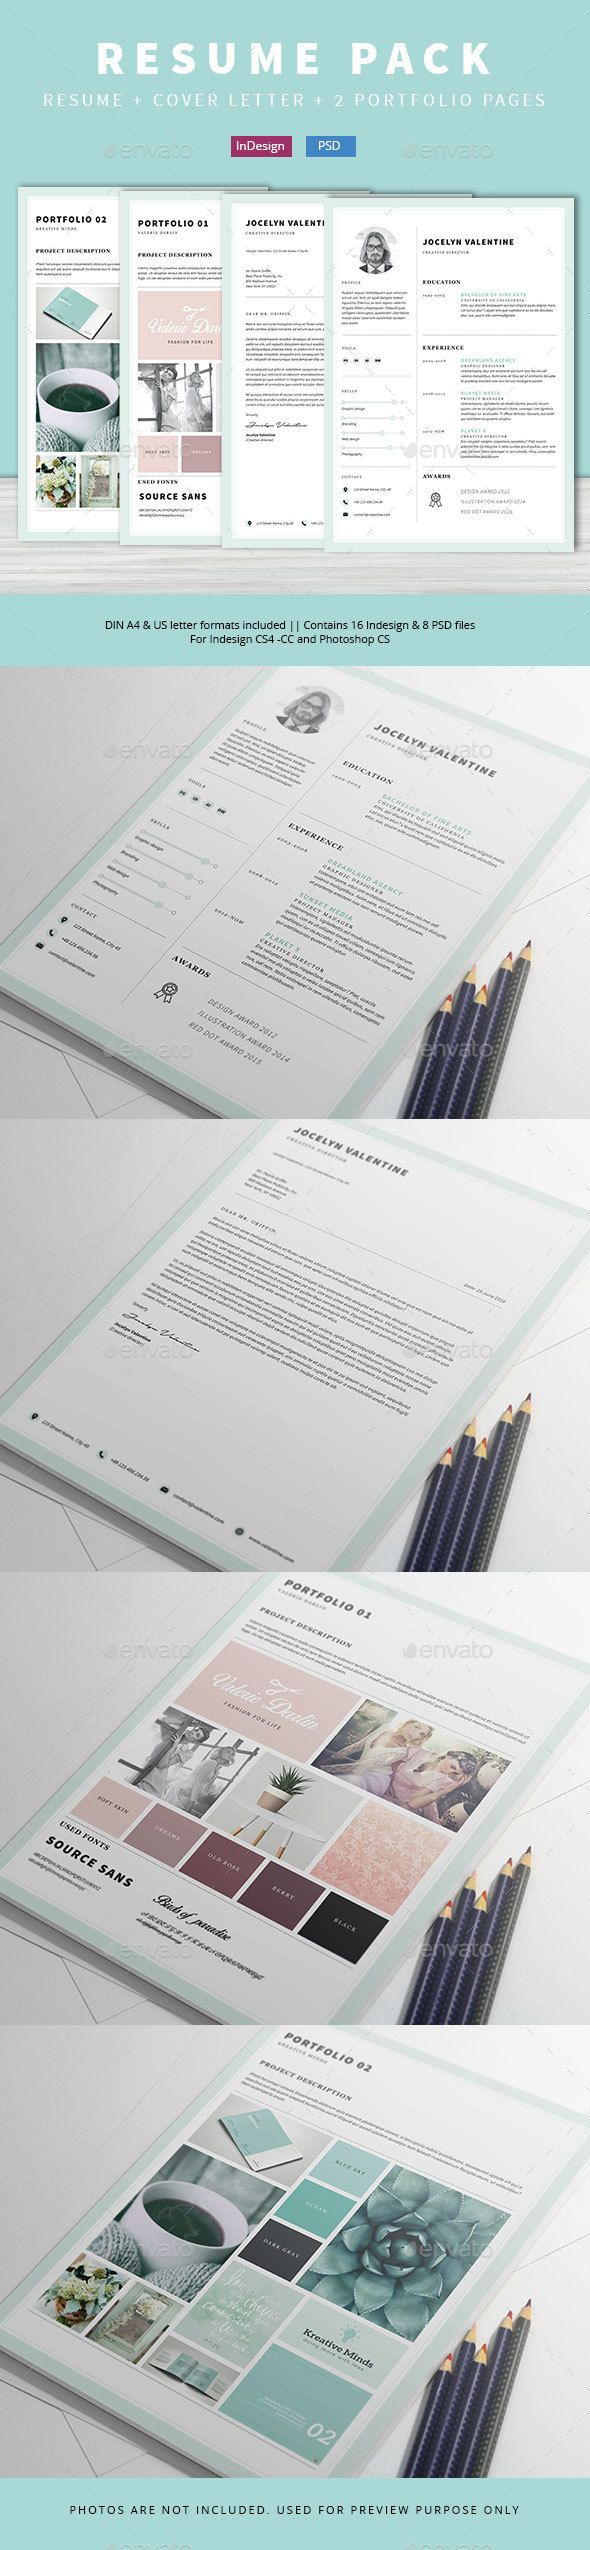 best images about resumes resume template 4 awesome psd indesign resume templates click here to